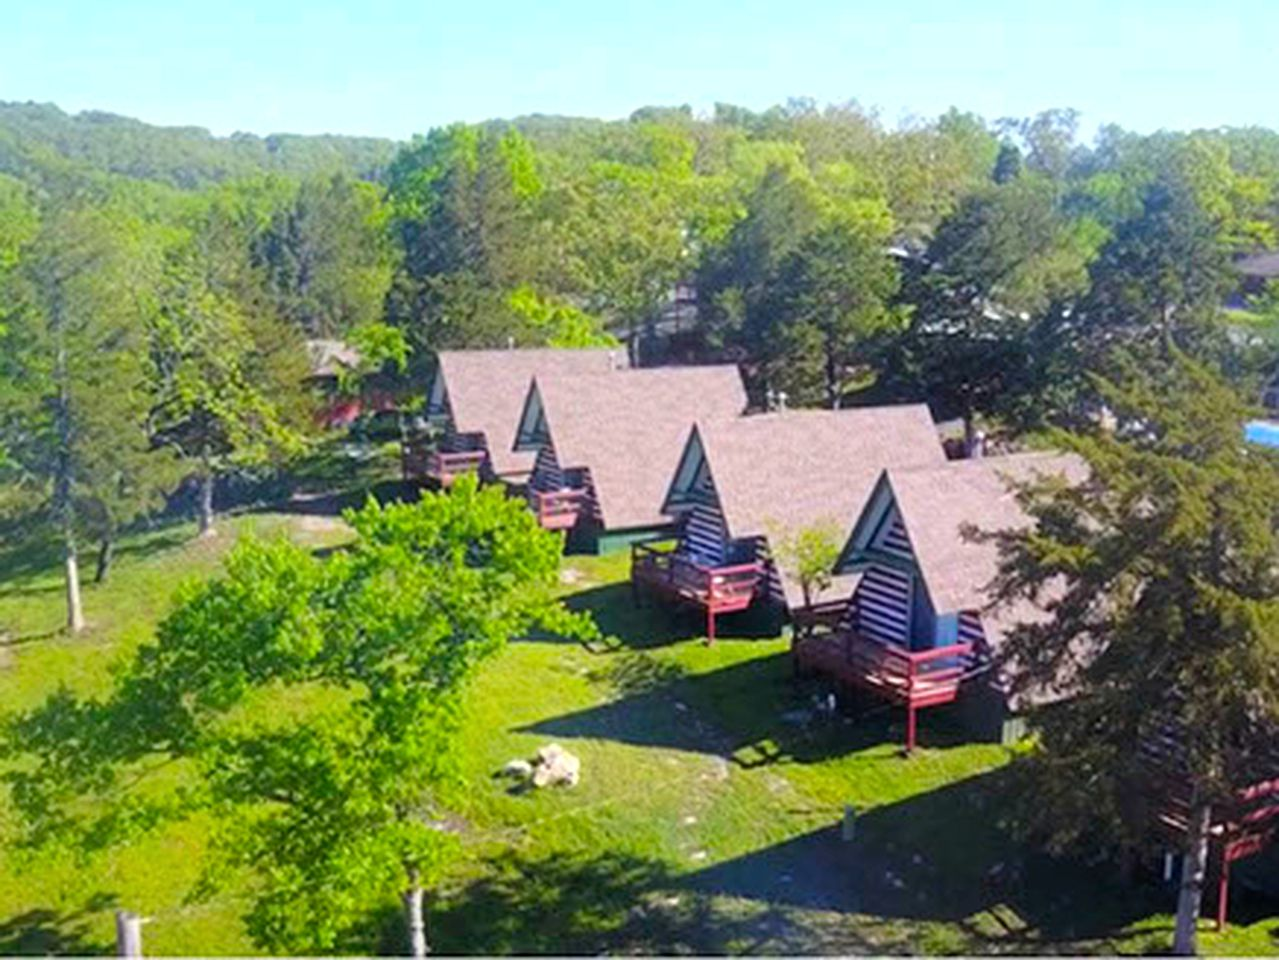 A-Frame Cabins (Branson, Missouri, United States)